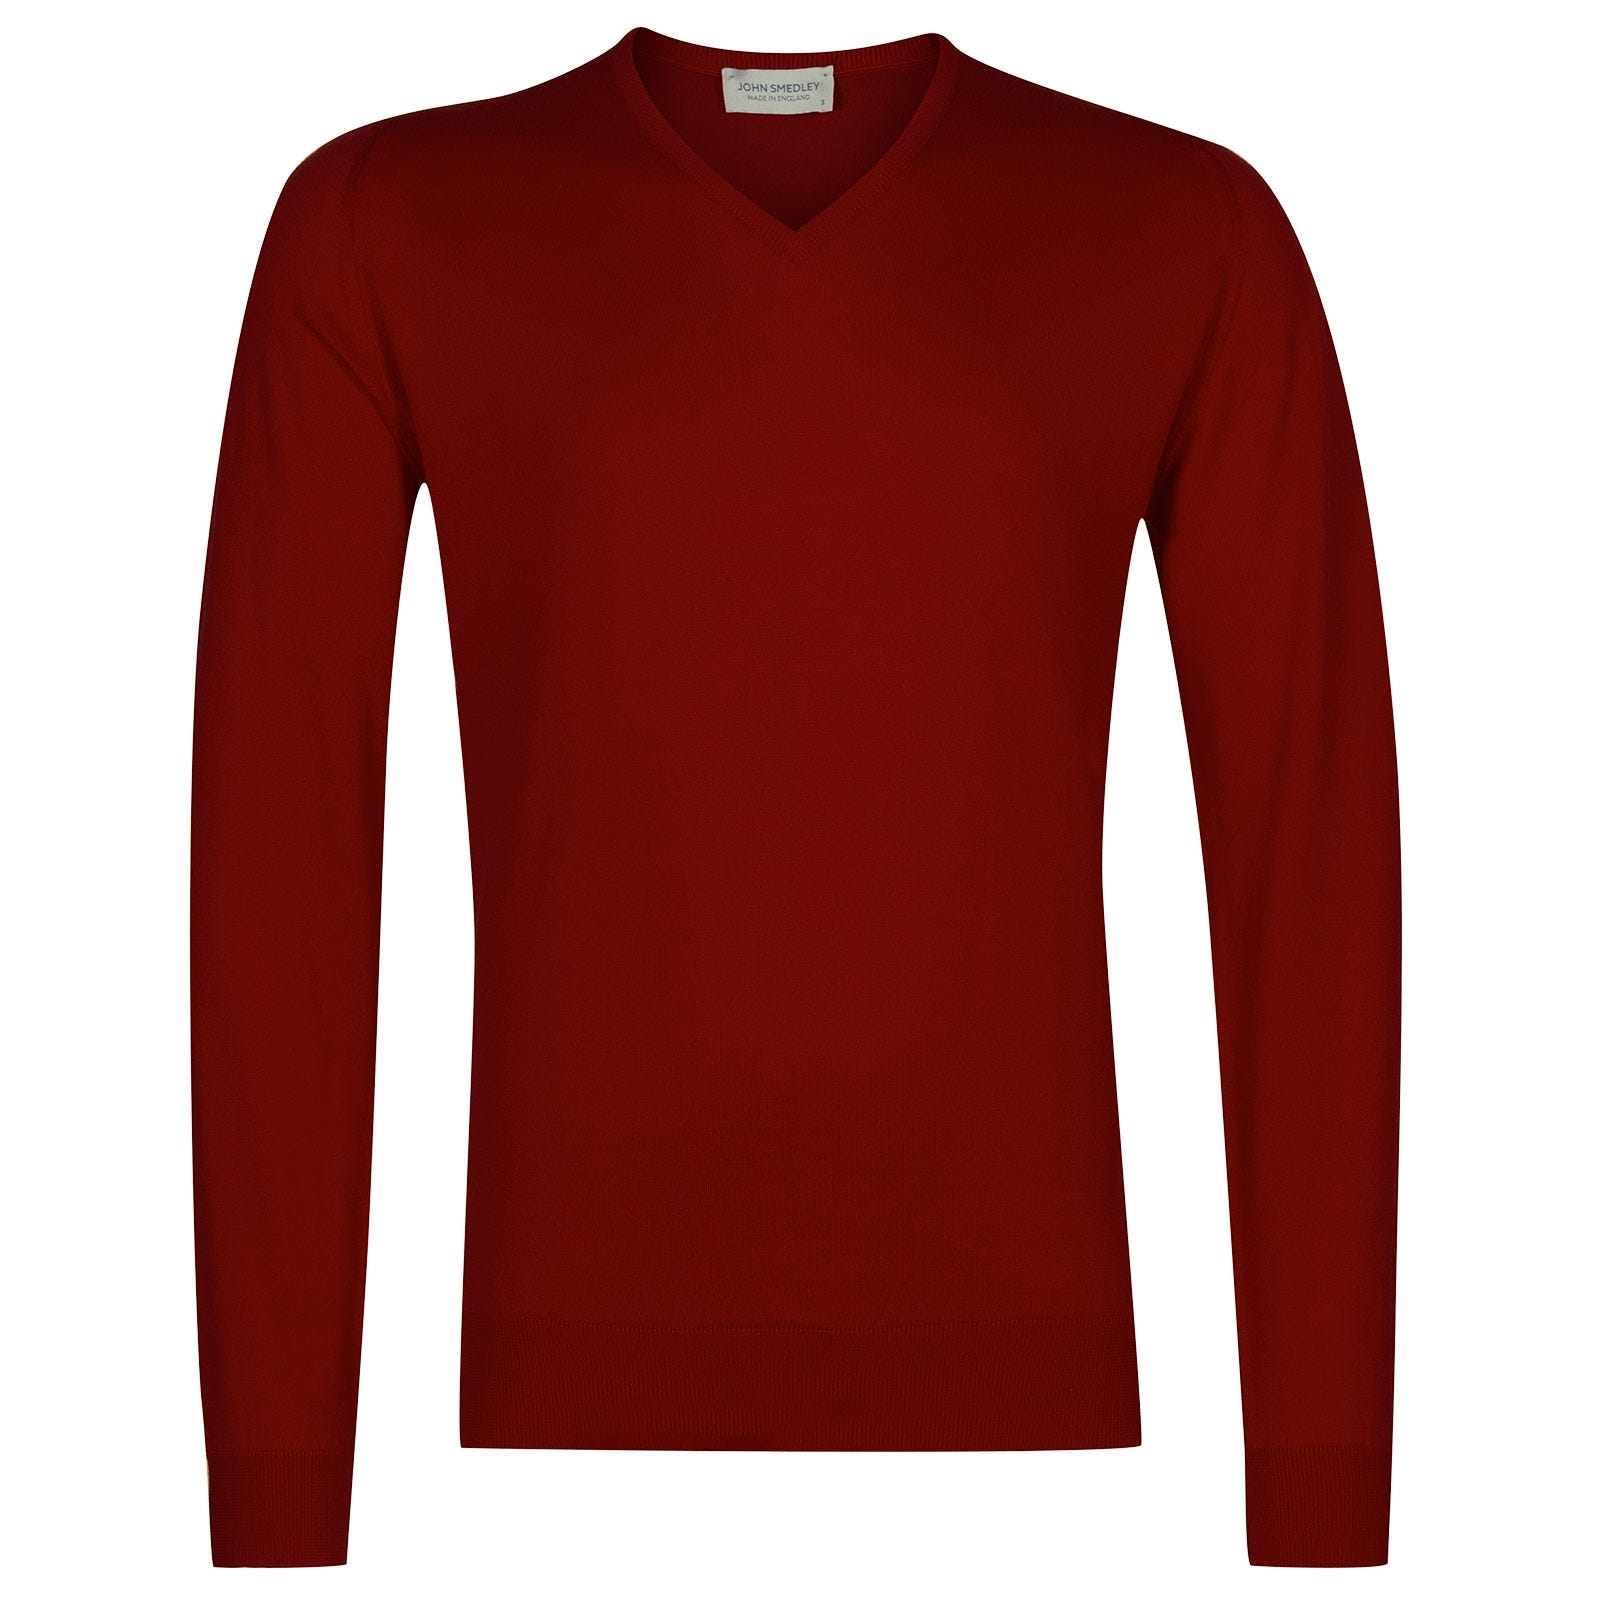 John Smedley Woburn Sea Island Cotton Pullover in Thermal Red-M